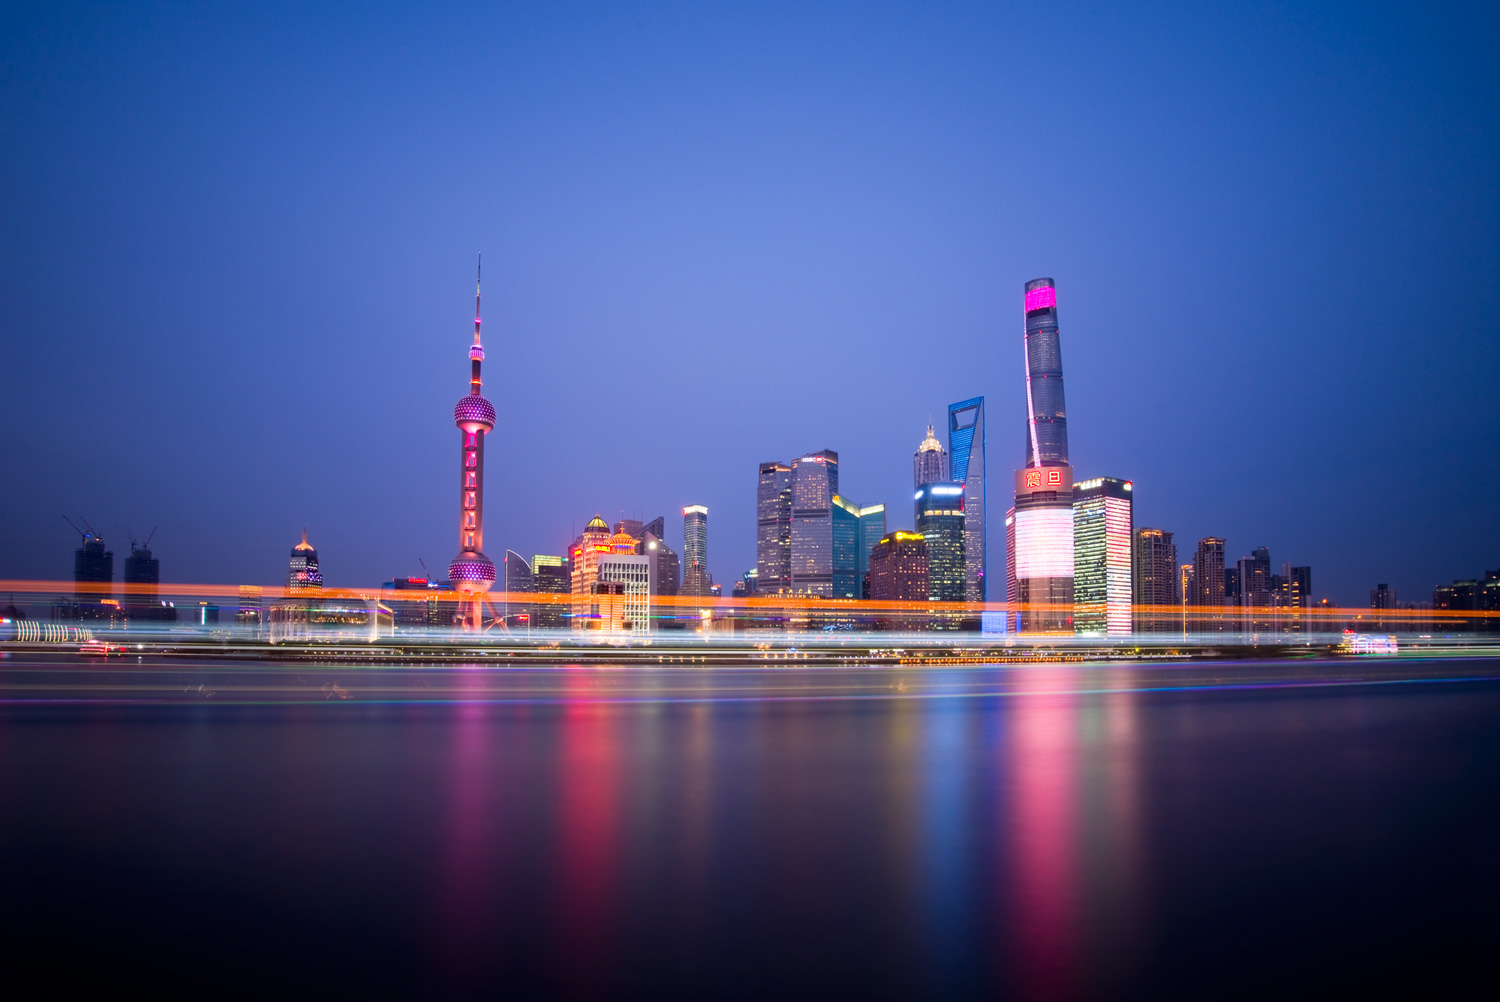 Image: Shanghai (China) skyline (18mm, f/13, 163 seconds, ISO100). Despite shooting on a clear eveni...